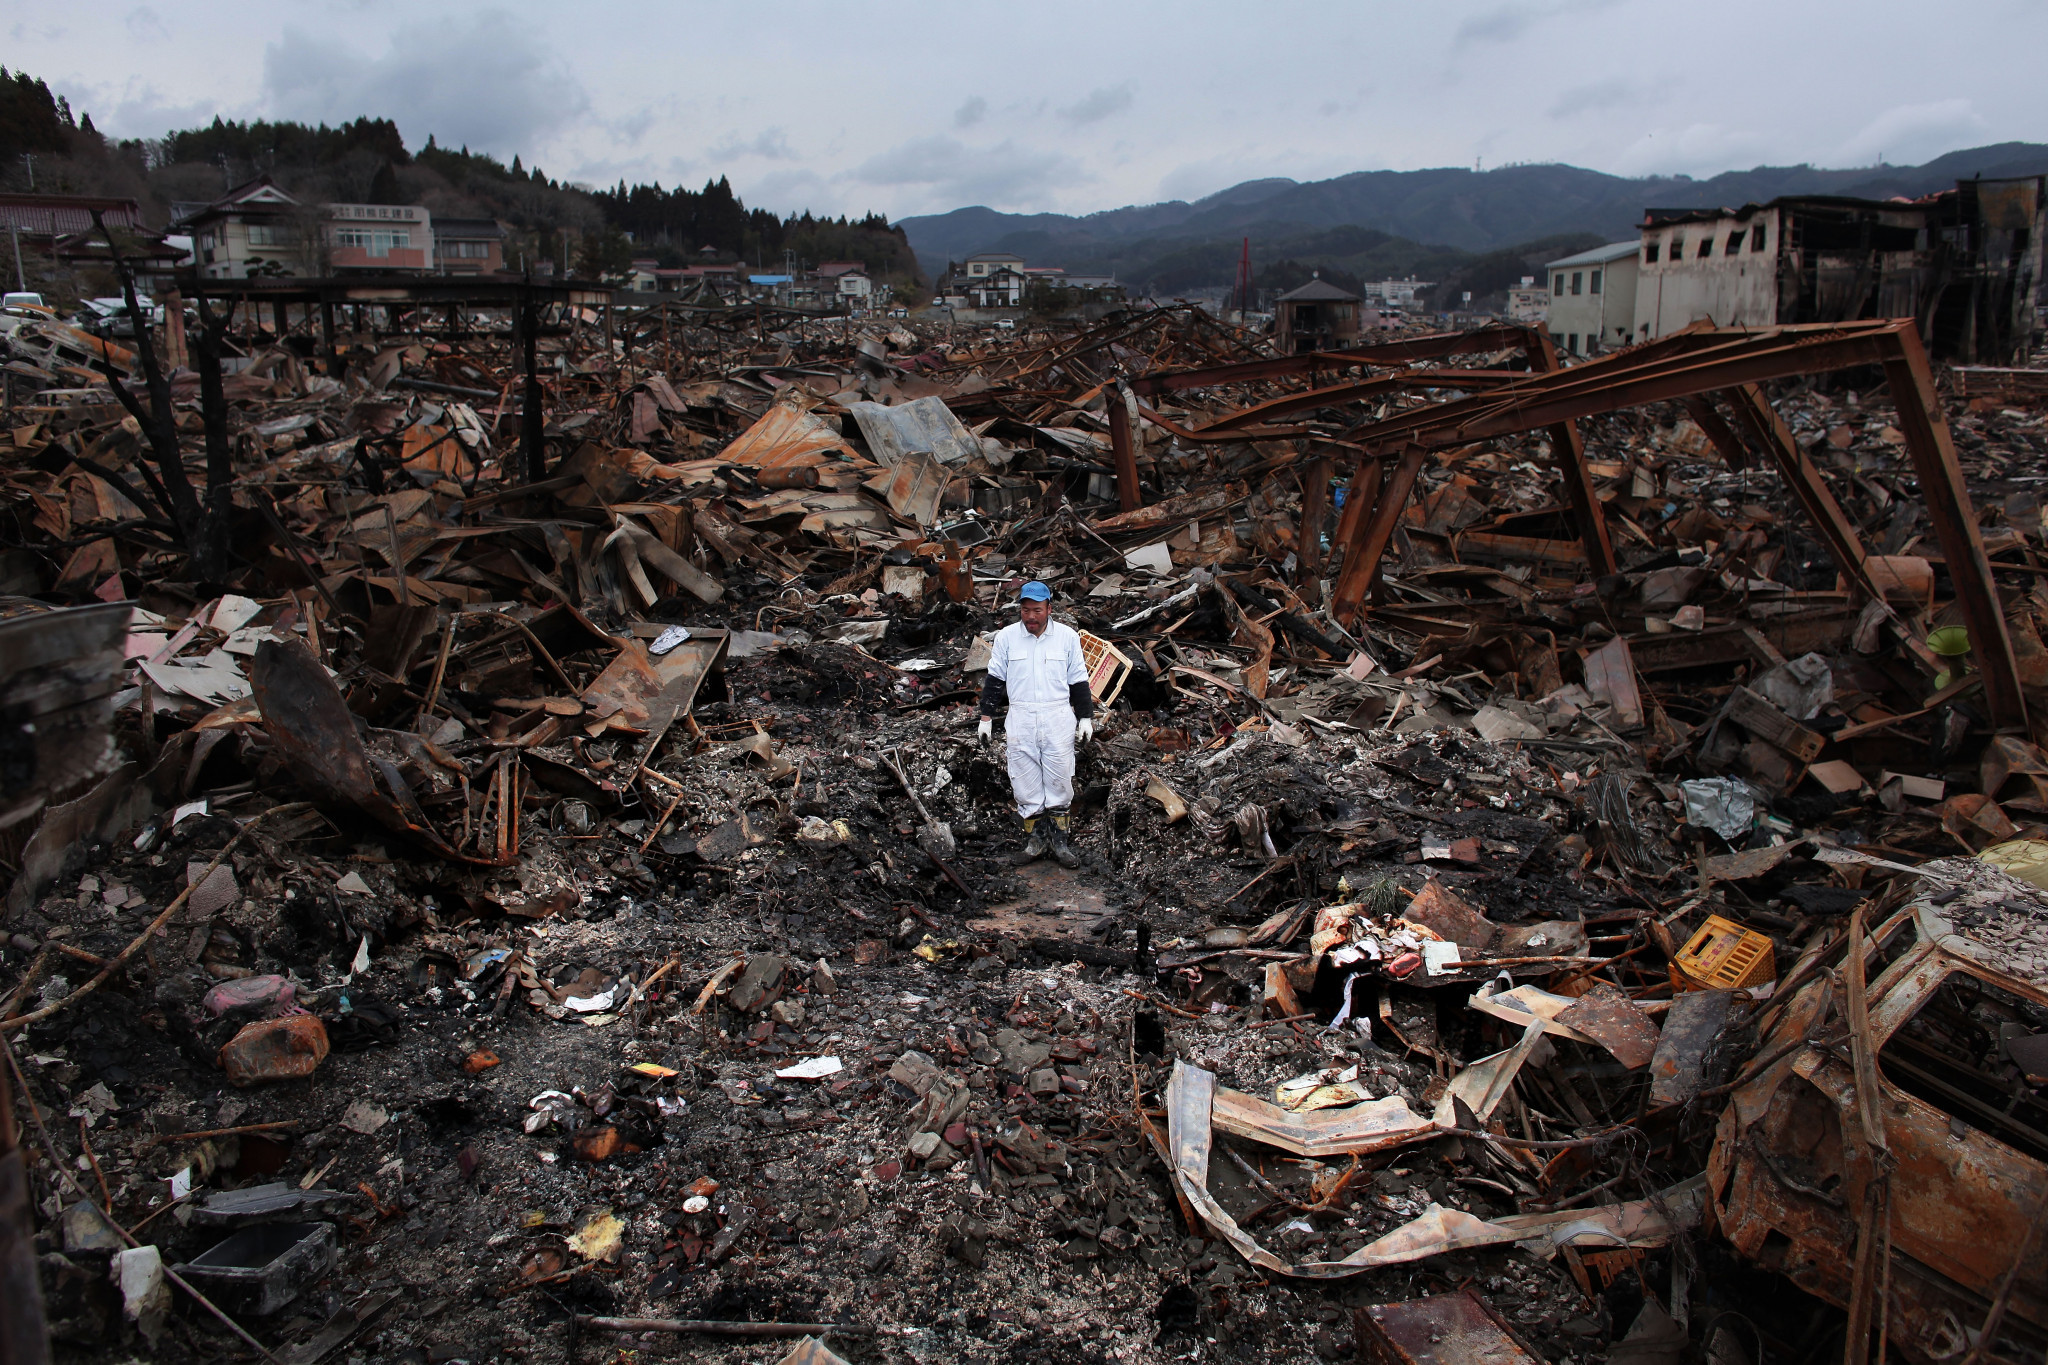 In excess of 20,000 people were killed by the Great East Japan Earthquake and ensuing tsunami in 2011 ©Getty Images